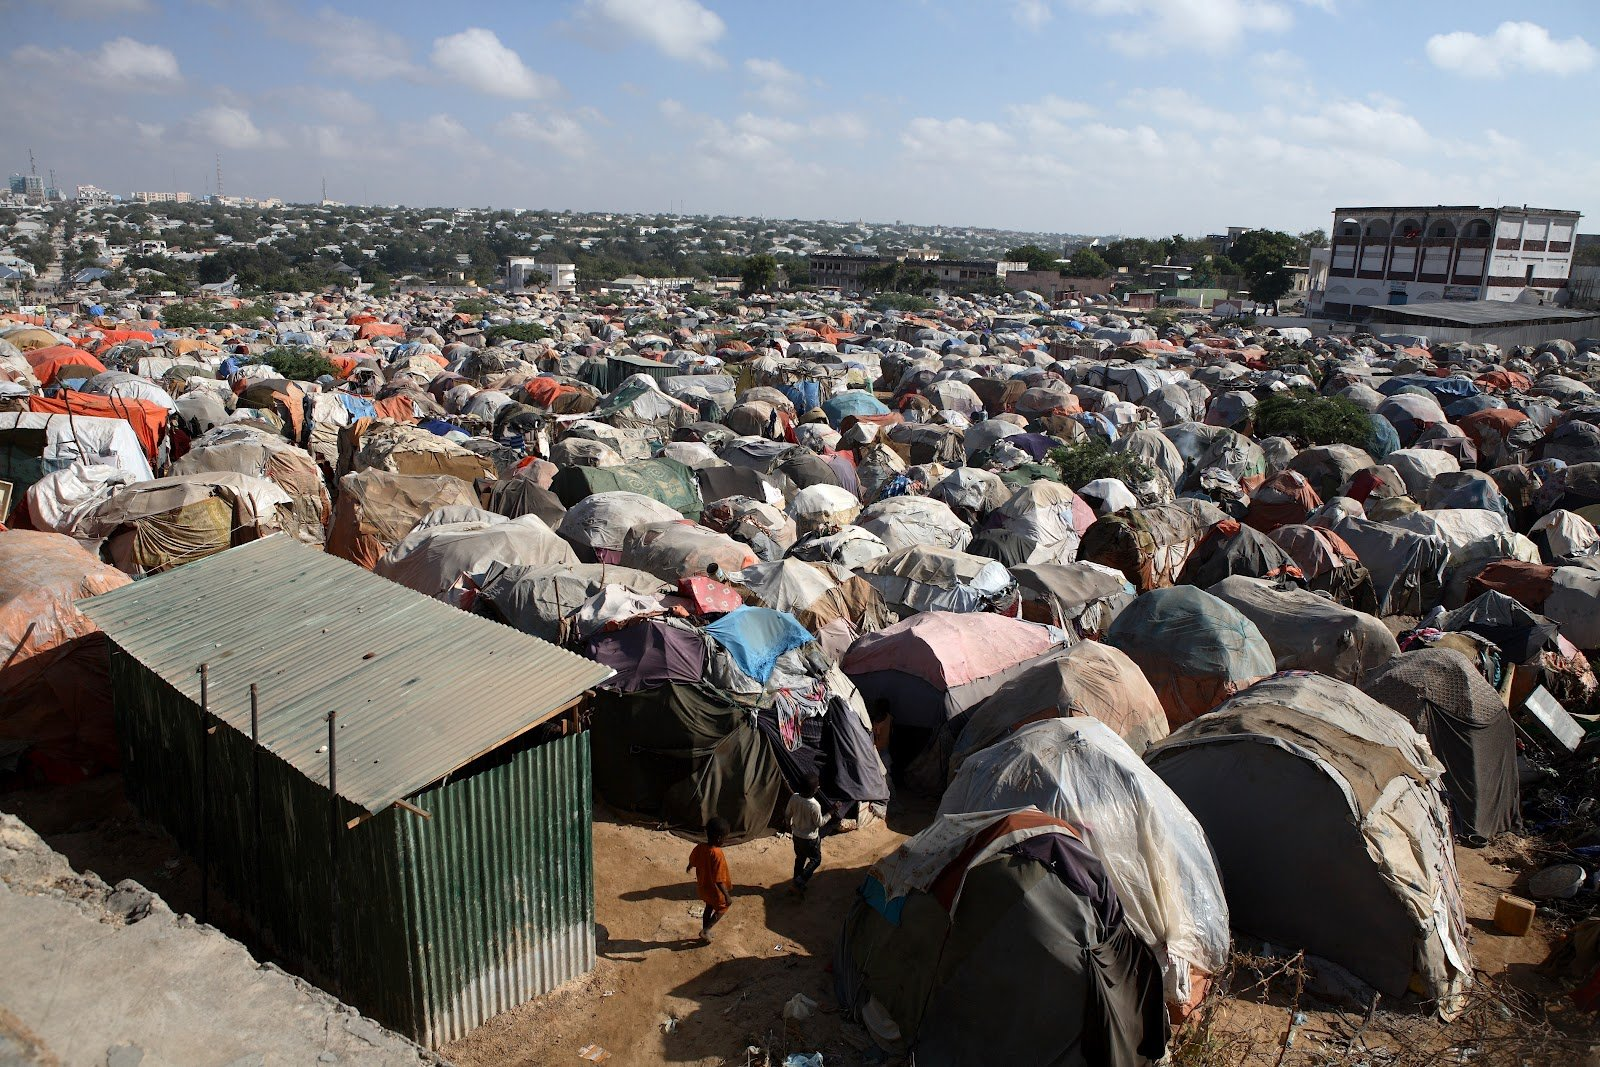 external image 10-Largest-refugee-camps.jpg